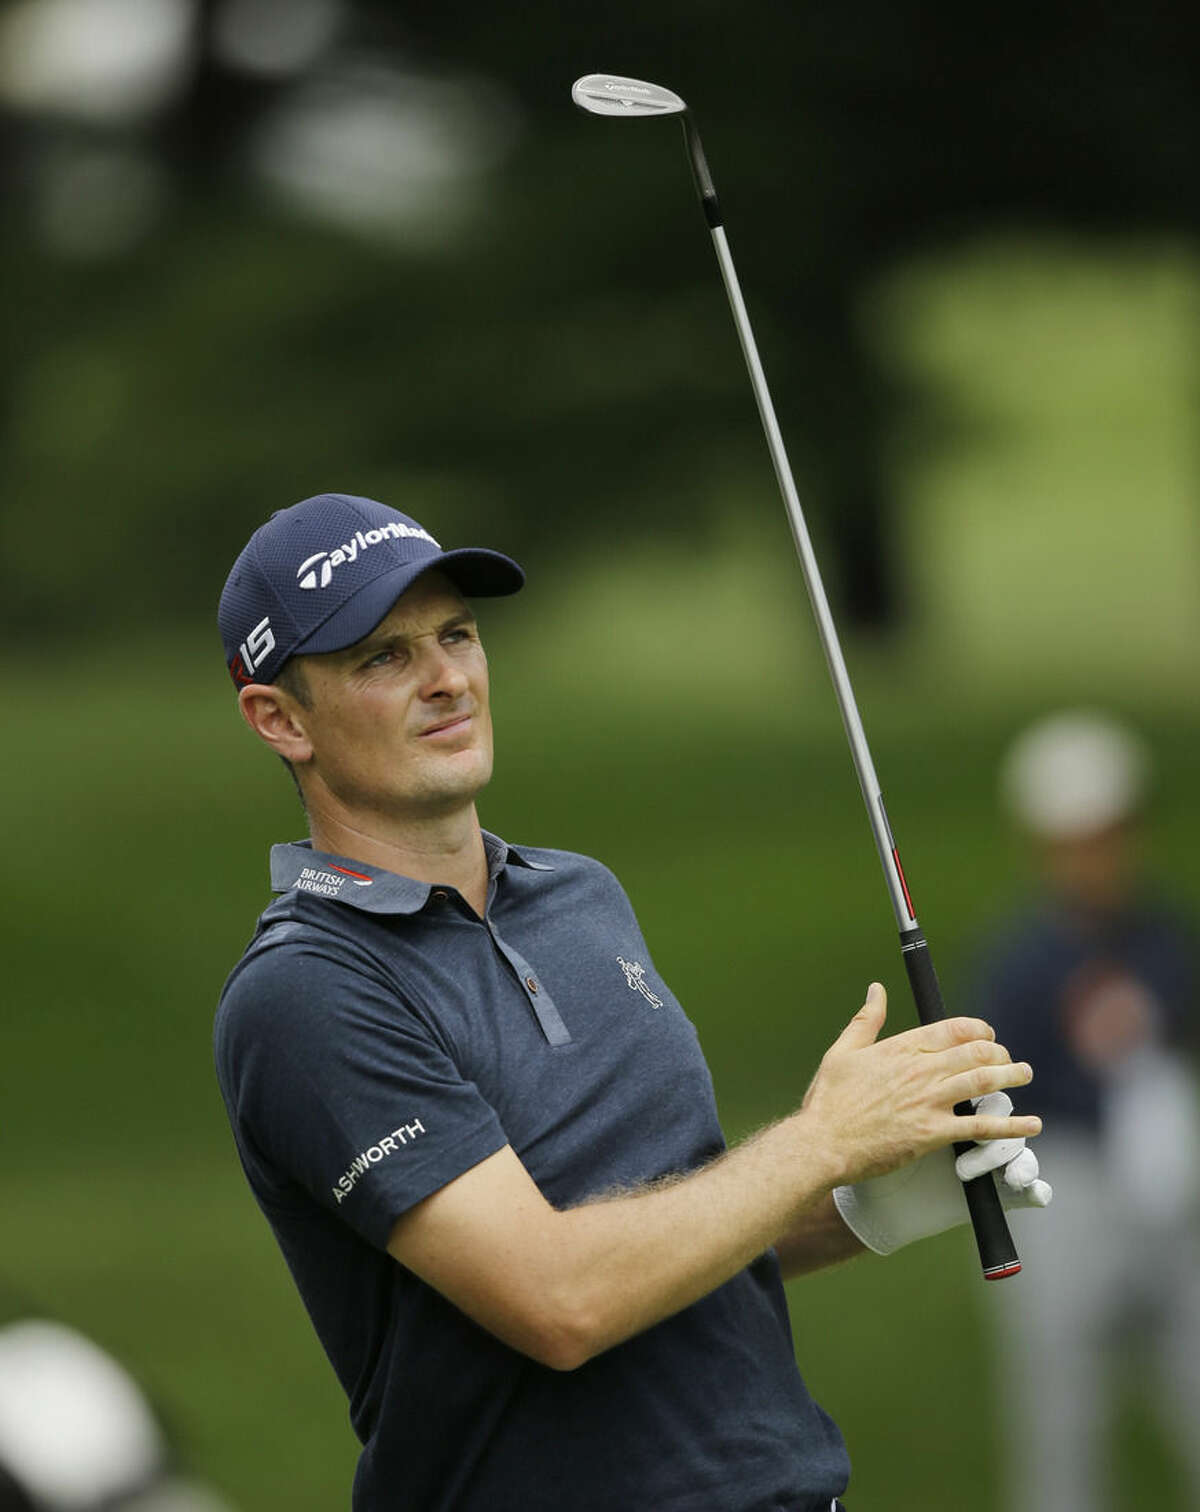 Justin Rose, from England, hits from the fairway on the first hole during the final round of the Bridgestone Invitational golf tournament at Firestone Country Club, Sunday, Aug. 9, 2015, in Akron, Ohio. (AP Photo/Tony Dejak)